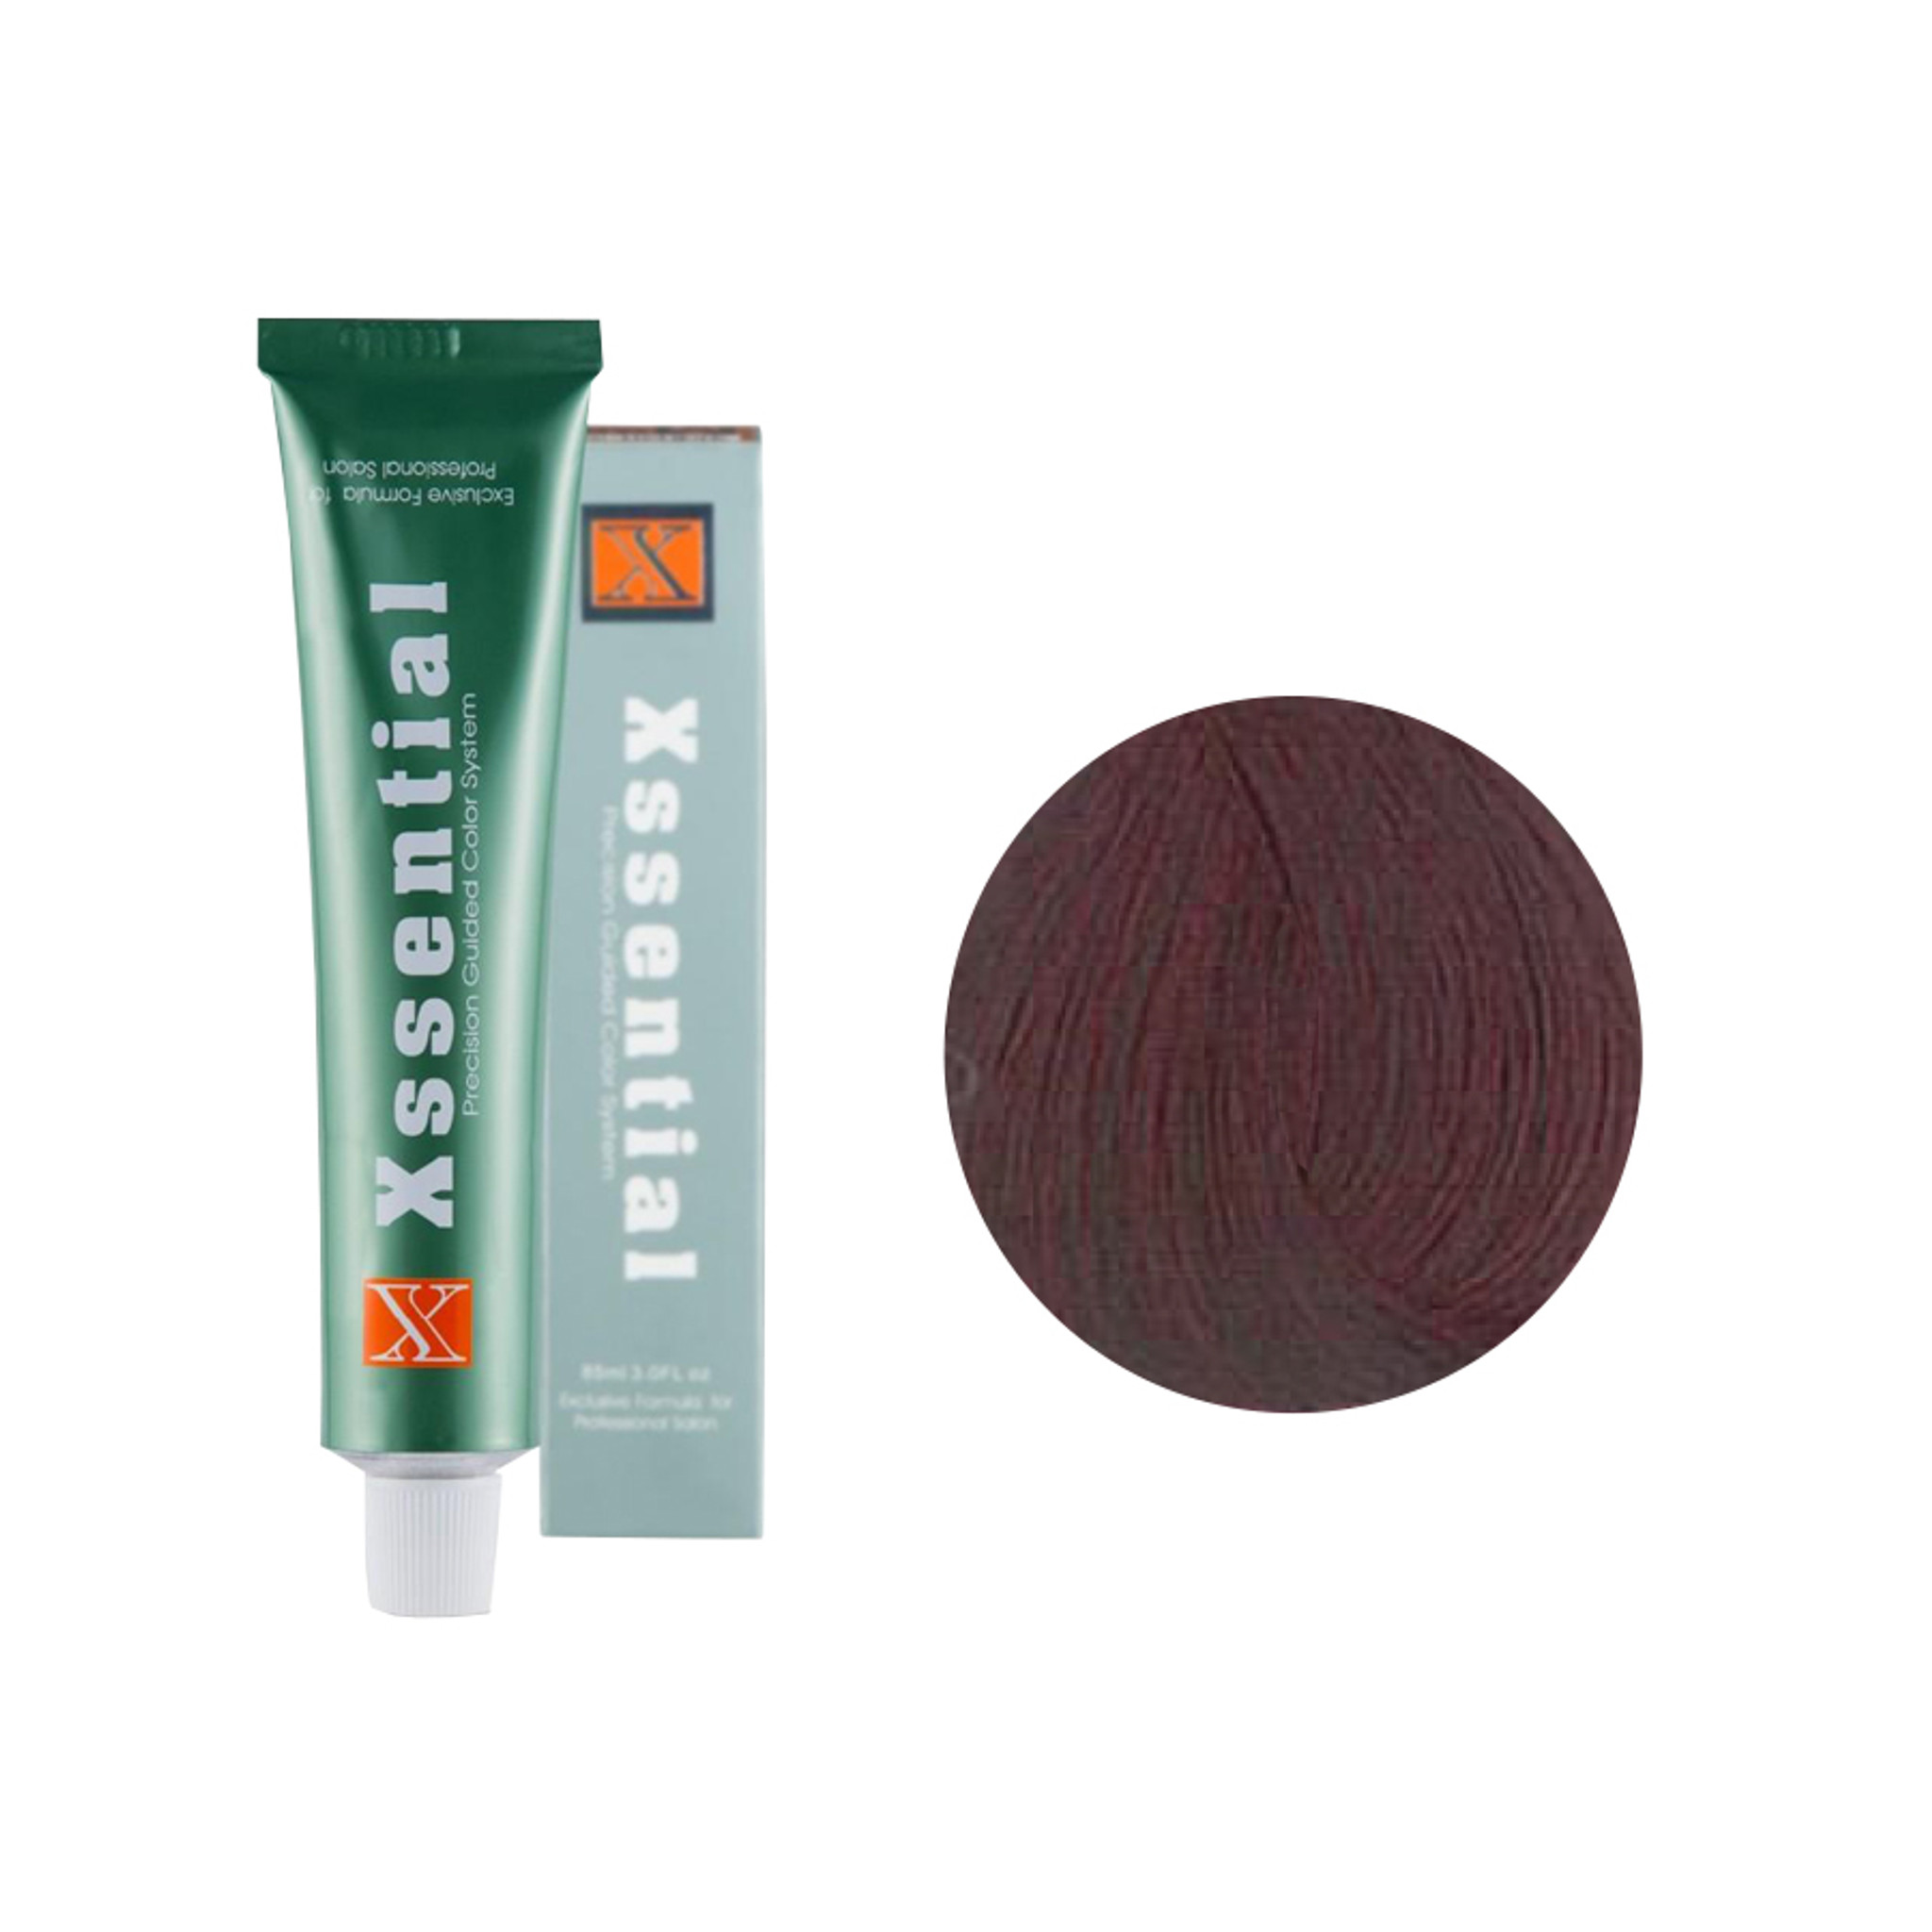 Xssential M07 Burgundy Manicure Color 85ml by Shop Salon Support - official distributor of Xssential  Professional Hair Products, Hair Colours, Hair Dyes and Vivid Colors. Salon Support are Hair & Barber Barbershop Trade Wholesale Hairdressing Supplies Melbourne Australia